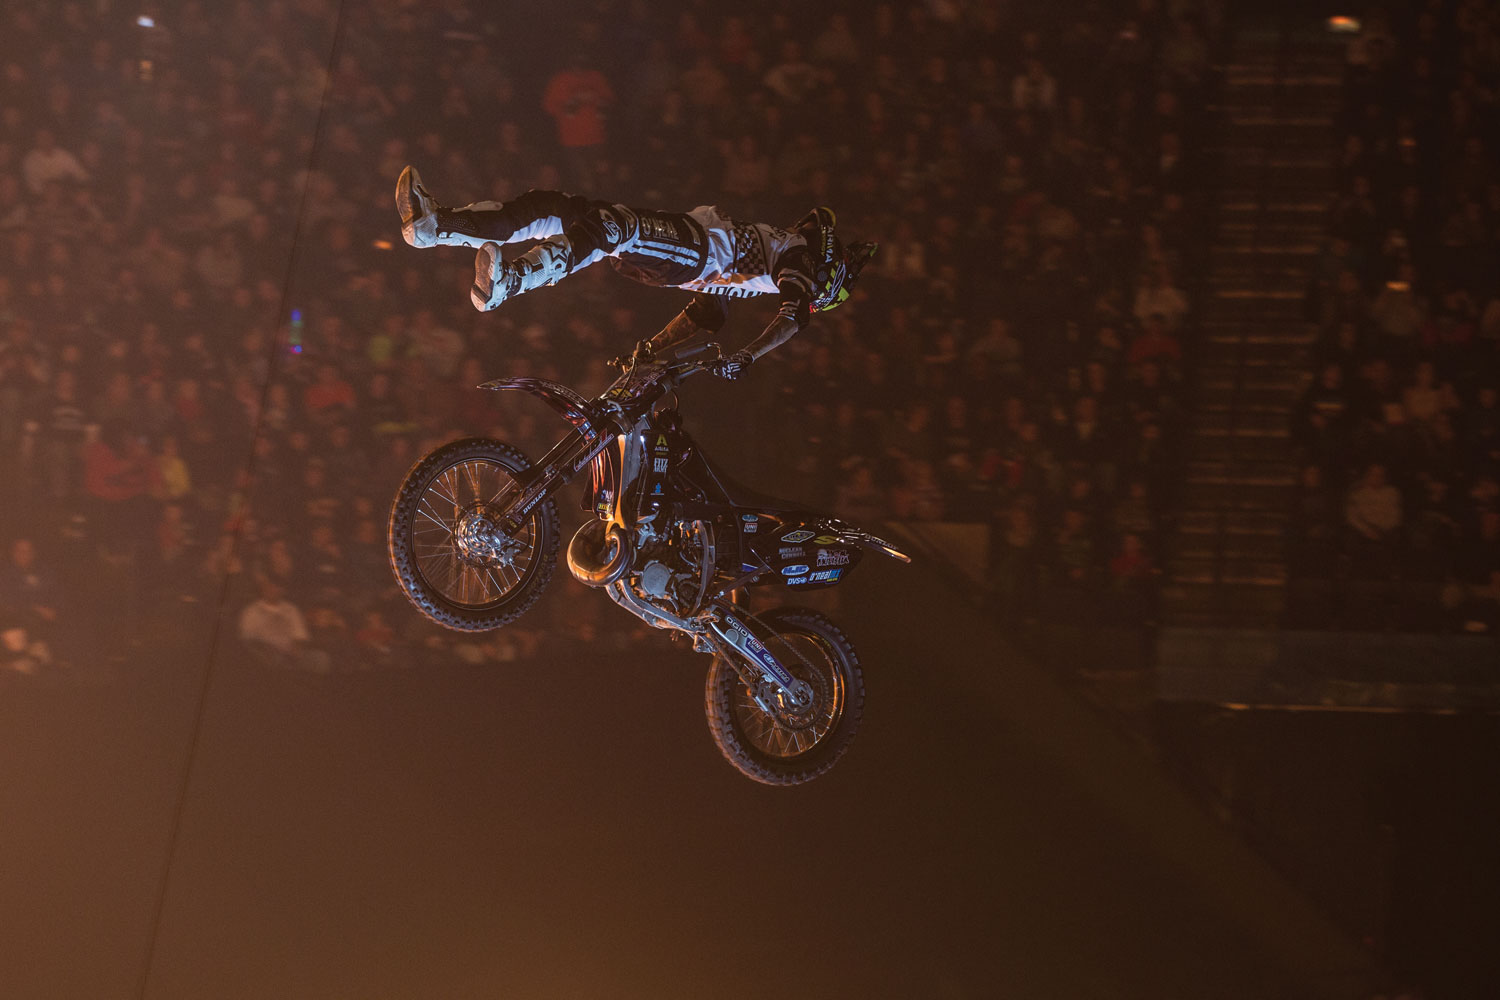 With stops left in Tacoma, WA (April 5-6), Houston, TX (April 12-13) and Duluth, GA (April 26-27) there's still time to catch one of the greatest motocross performances in the world.